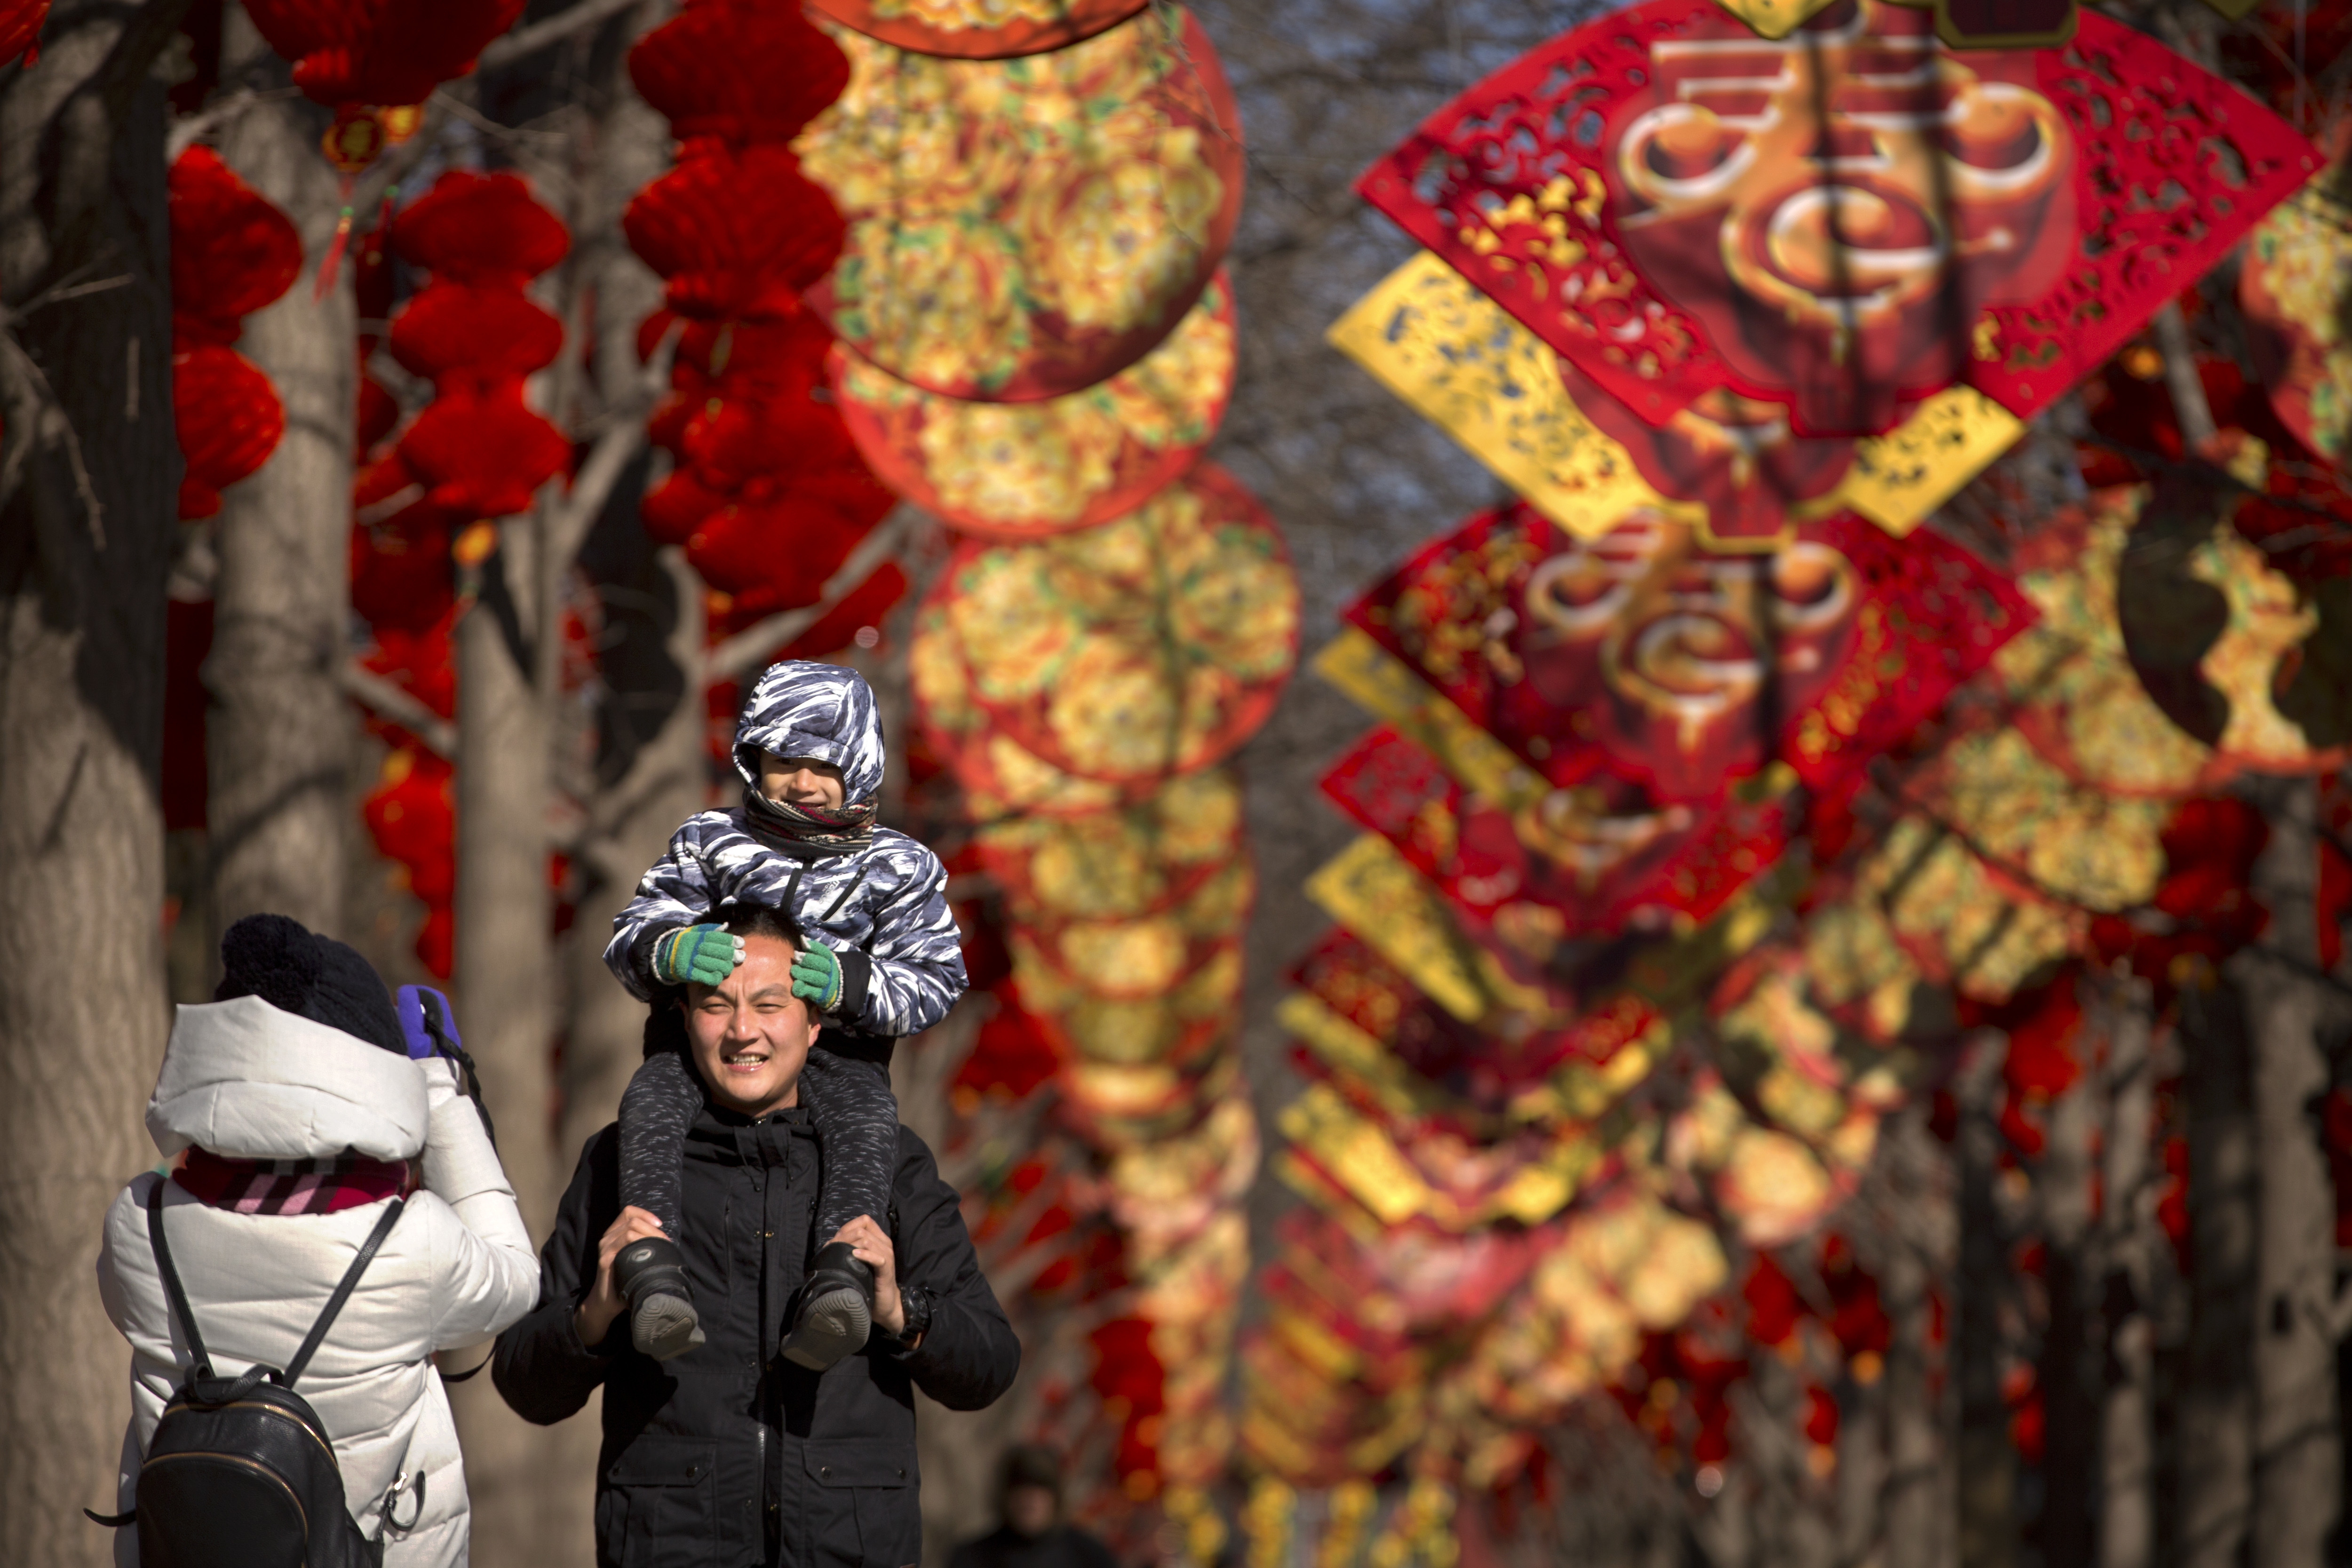 A man holds a child as they pose for a photo near a pathway decorated for the Lunar New Year (Mark Schiefelbein/AP)